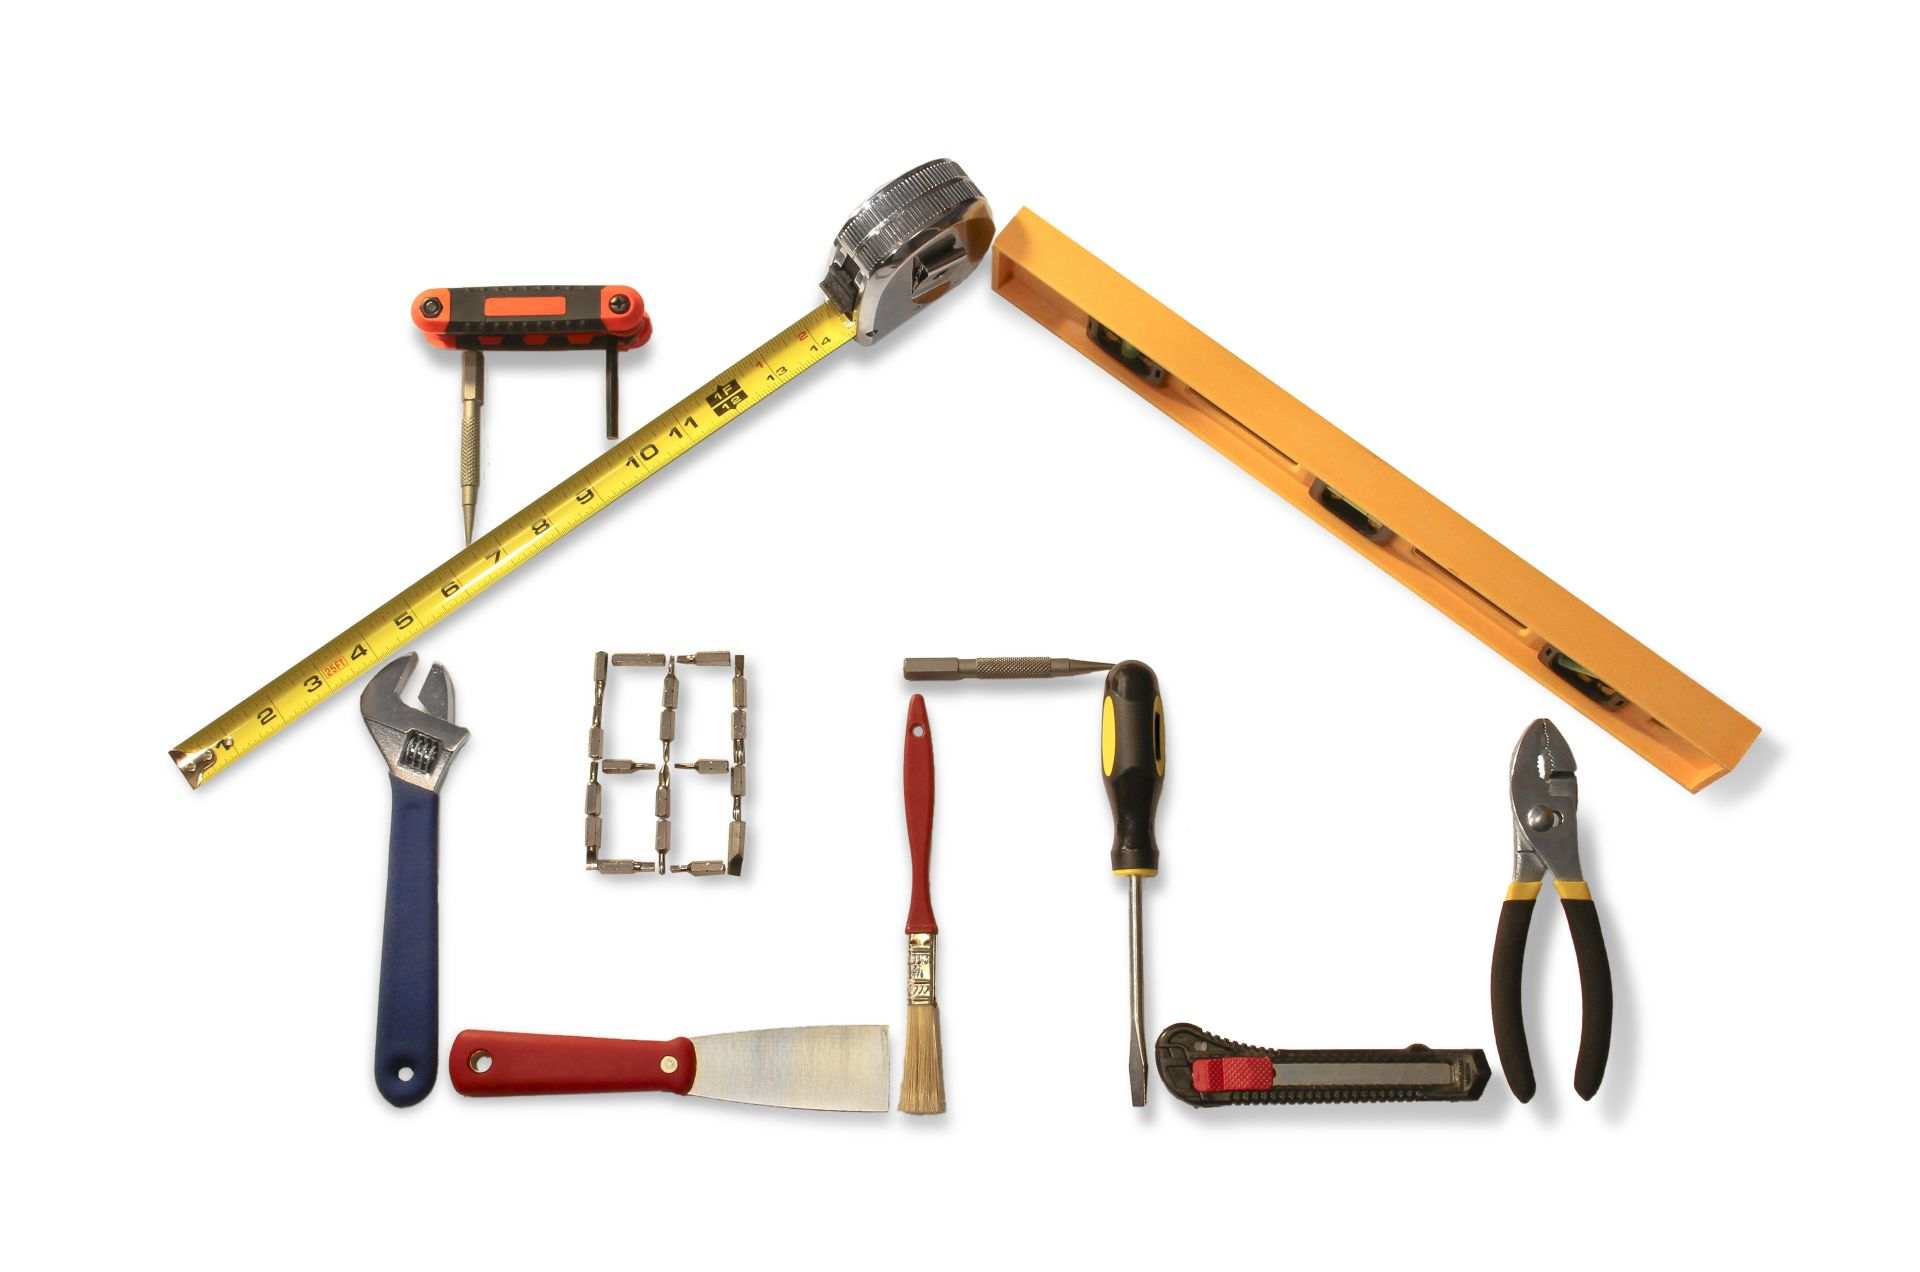 3 Easy Home Improvements Projects For The Winter